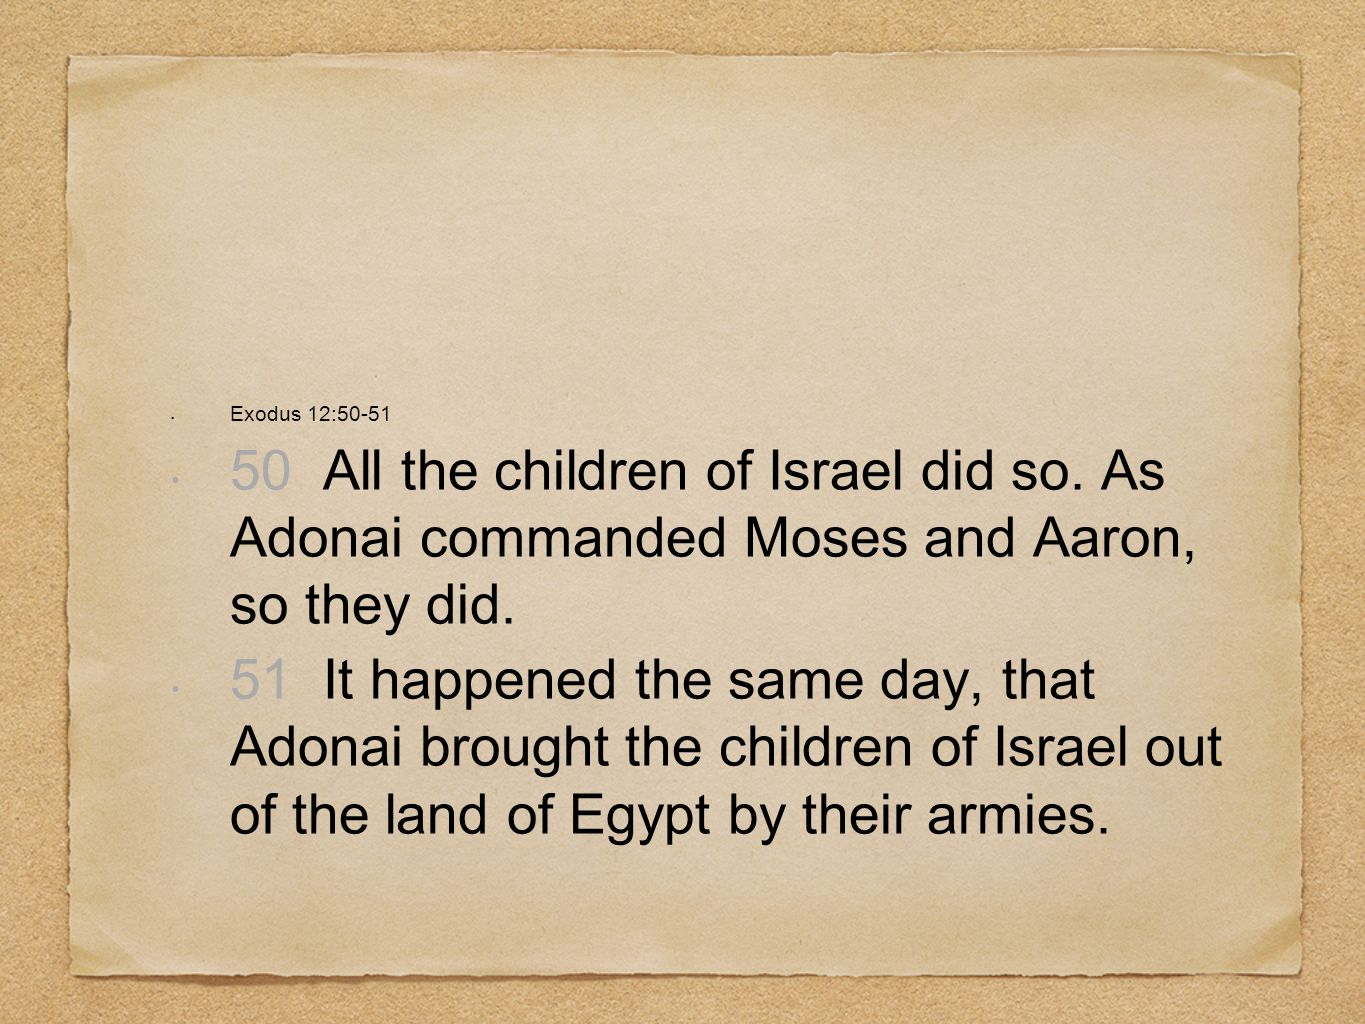 Exodus 12:50-5150 All the children of Israel did so. As Adonai commanded Moses and Aaron, so they did.